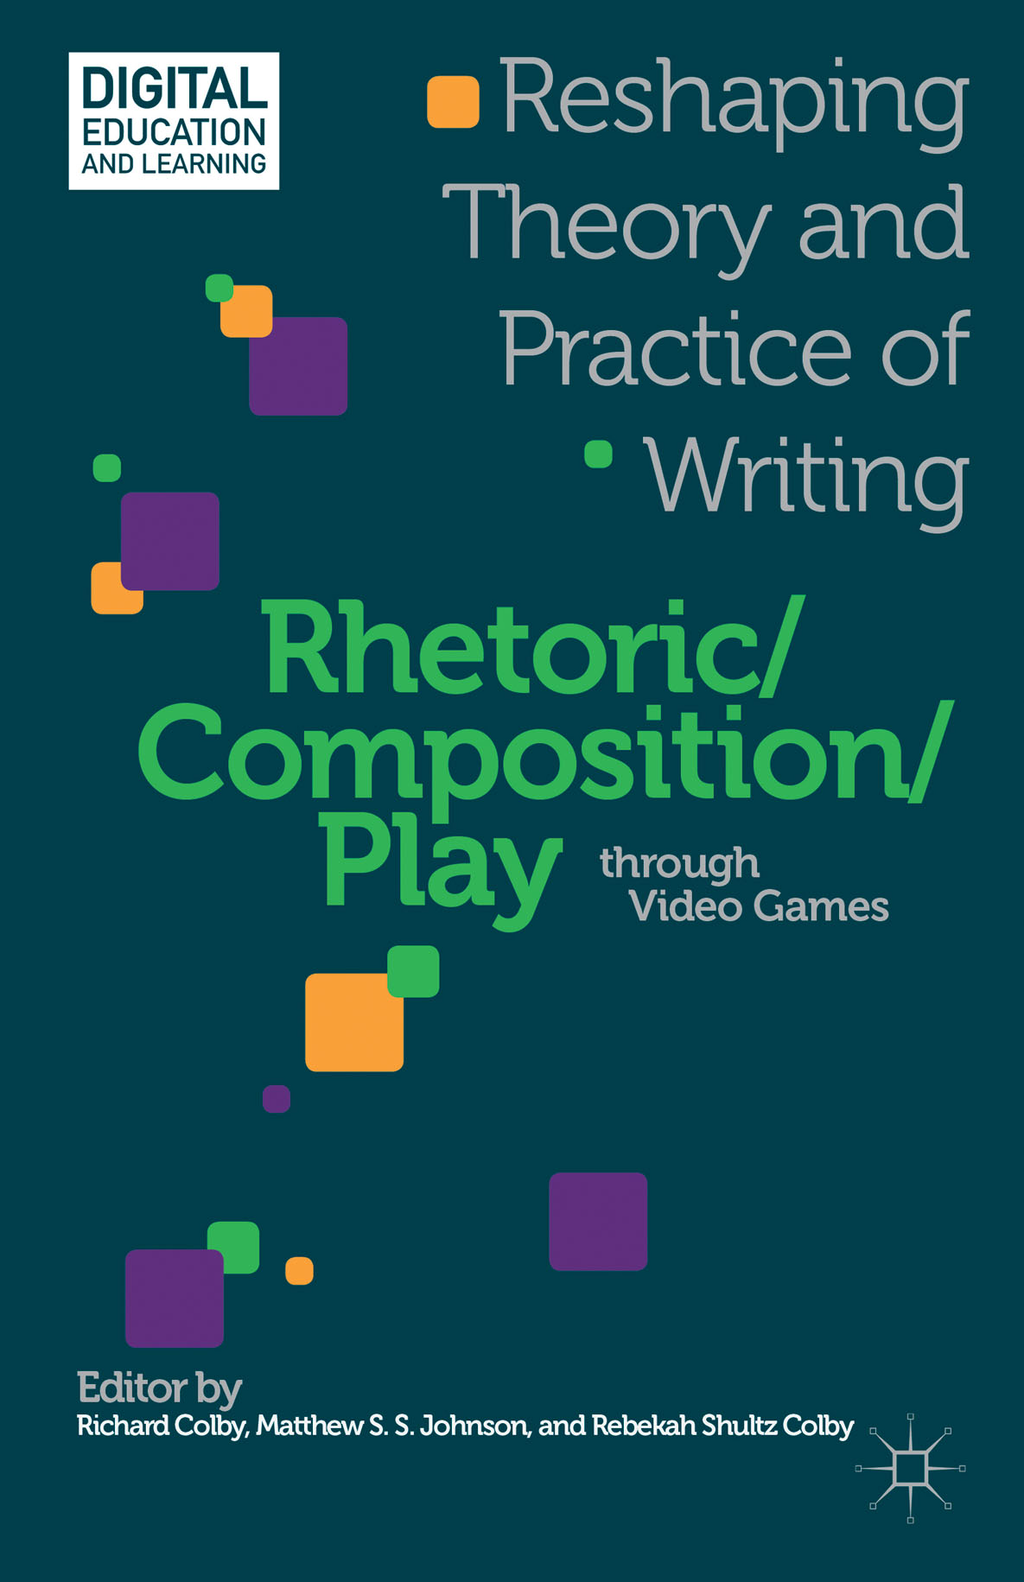 Rhetoric/Composition/Play through Video Games